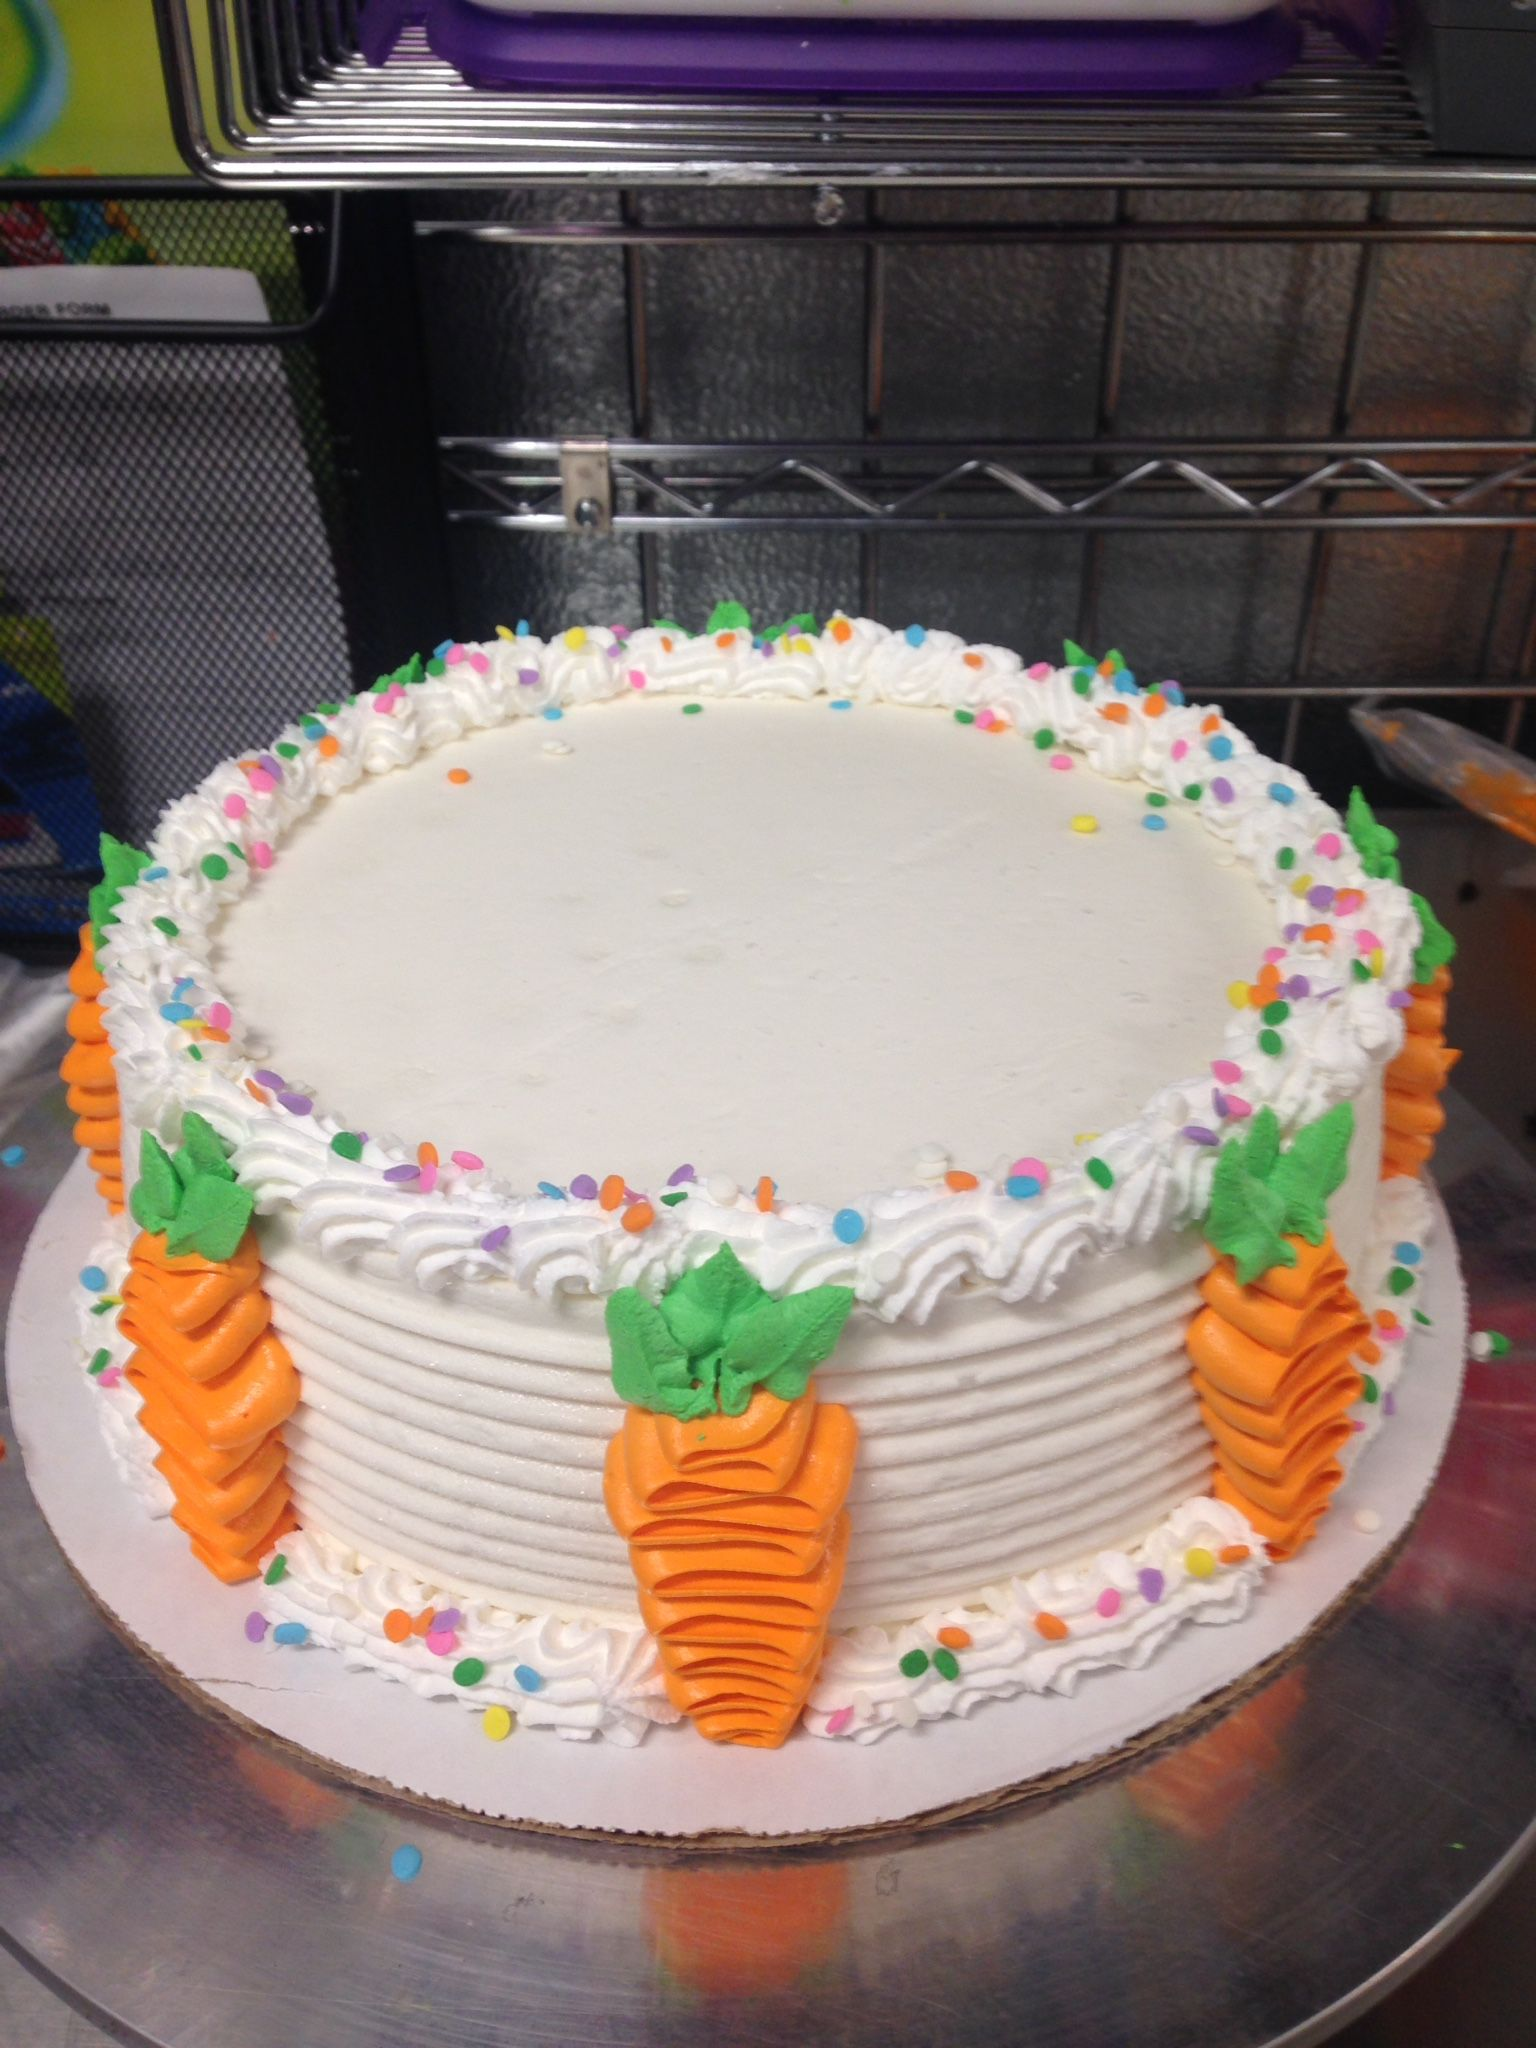 Easter ice cream cake with carrots   Cake ideas   Pinterest ...